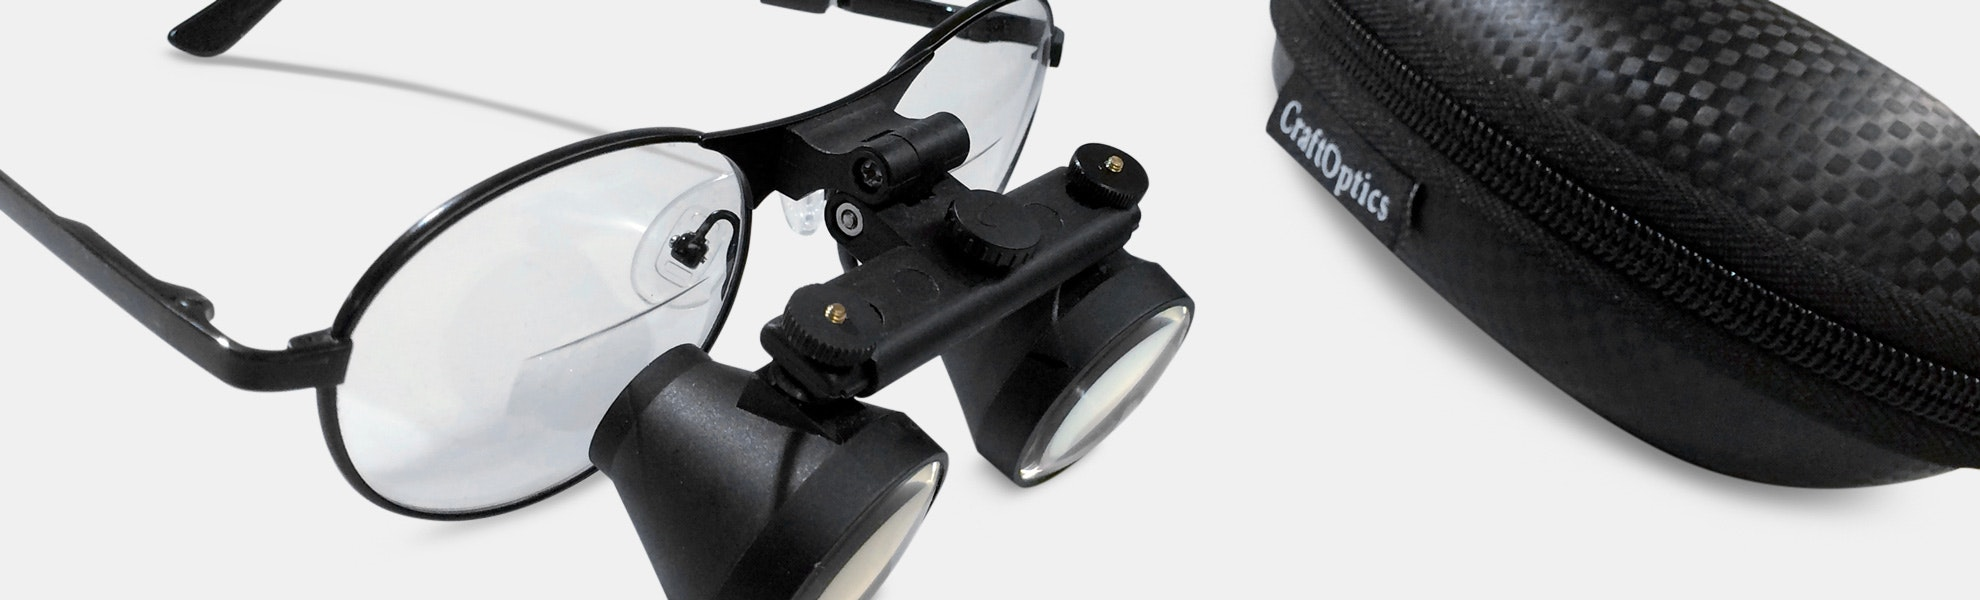 CraftOptics Magnifying Telescopes